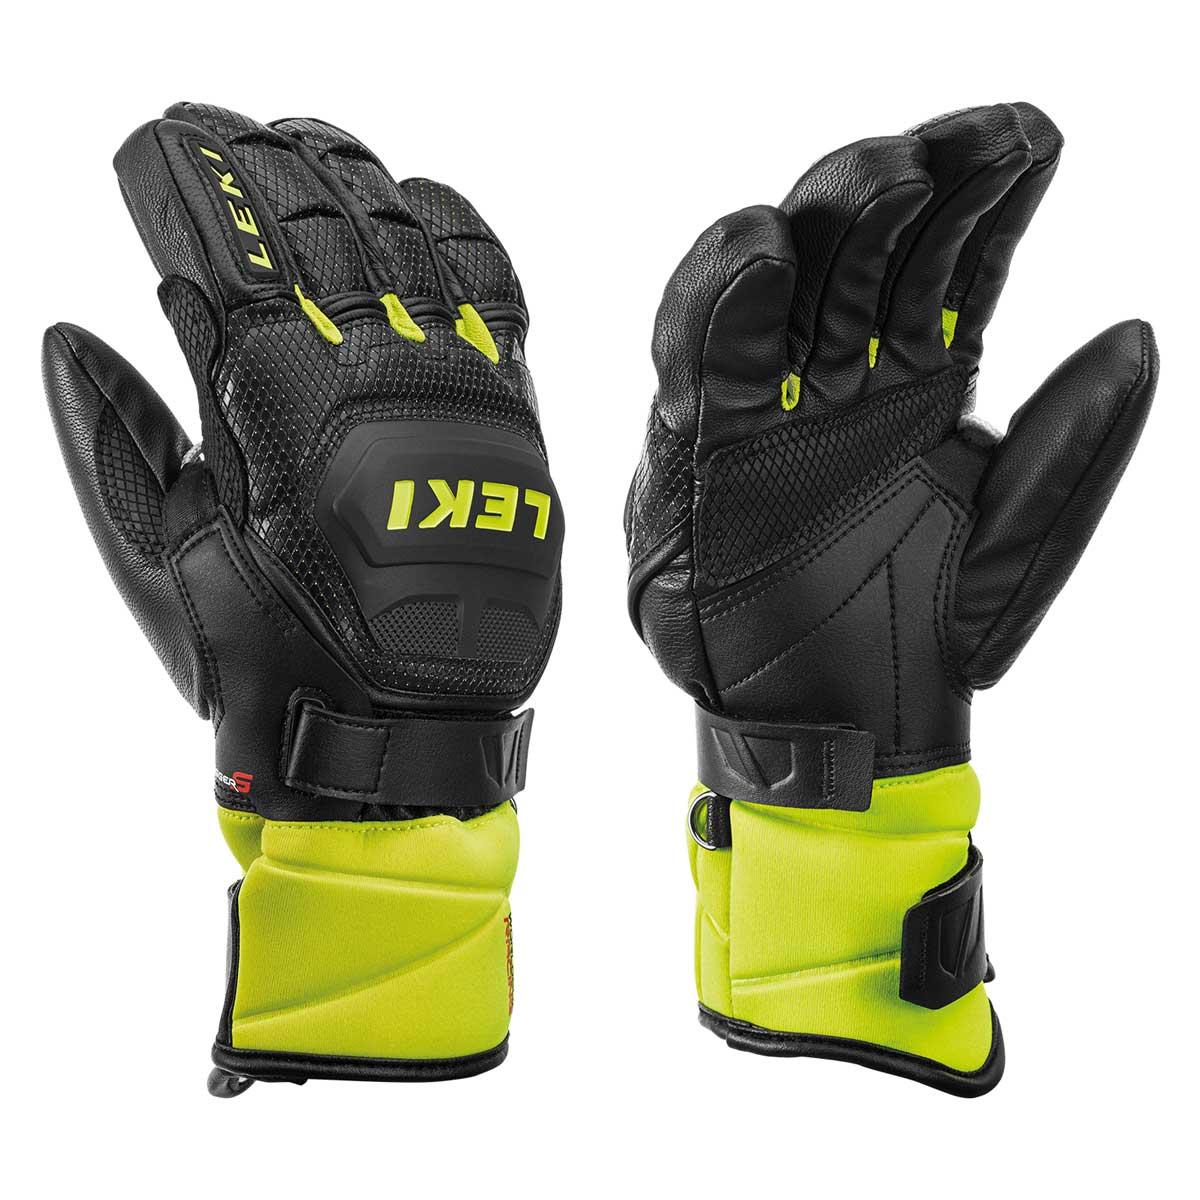 Leki Kids' Worldcup Race Flex S Glove in Black and Lemon